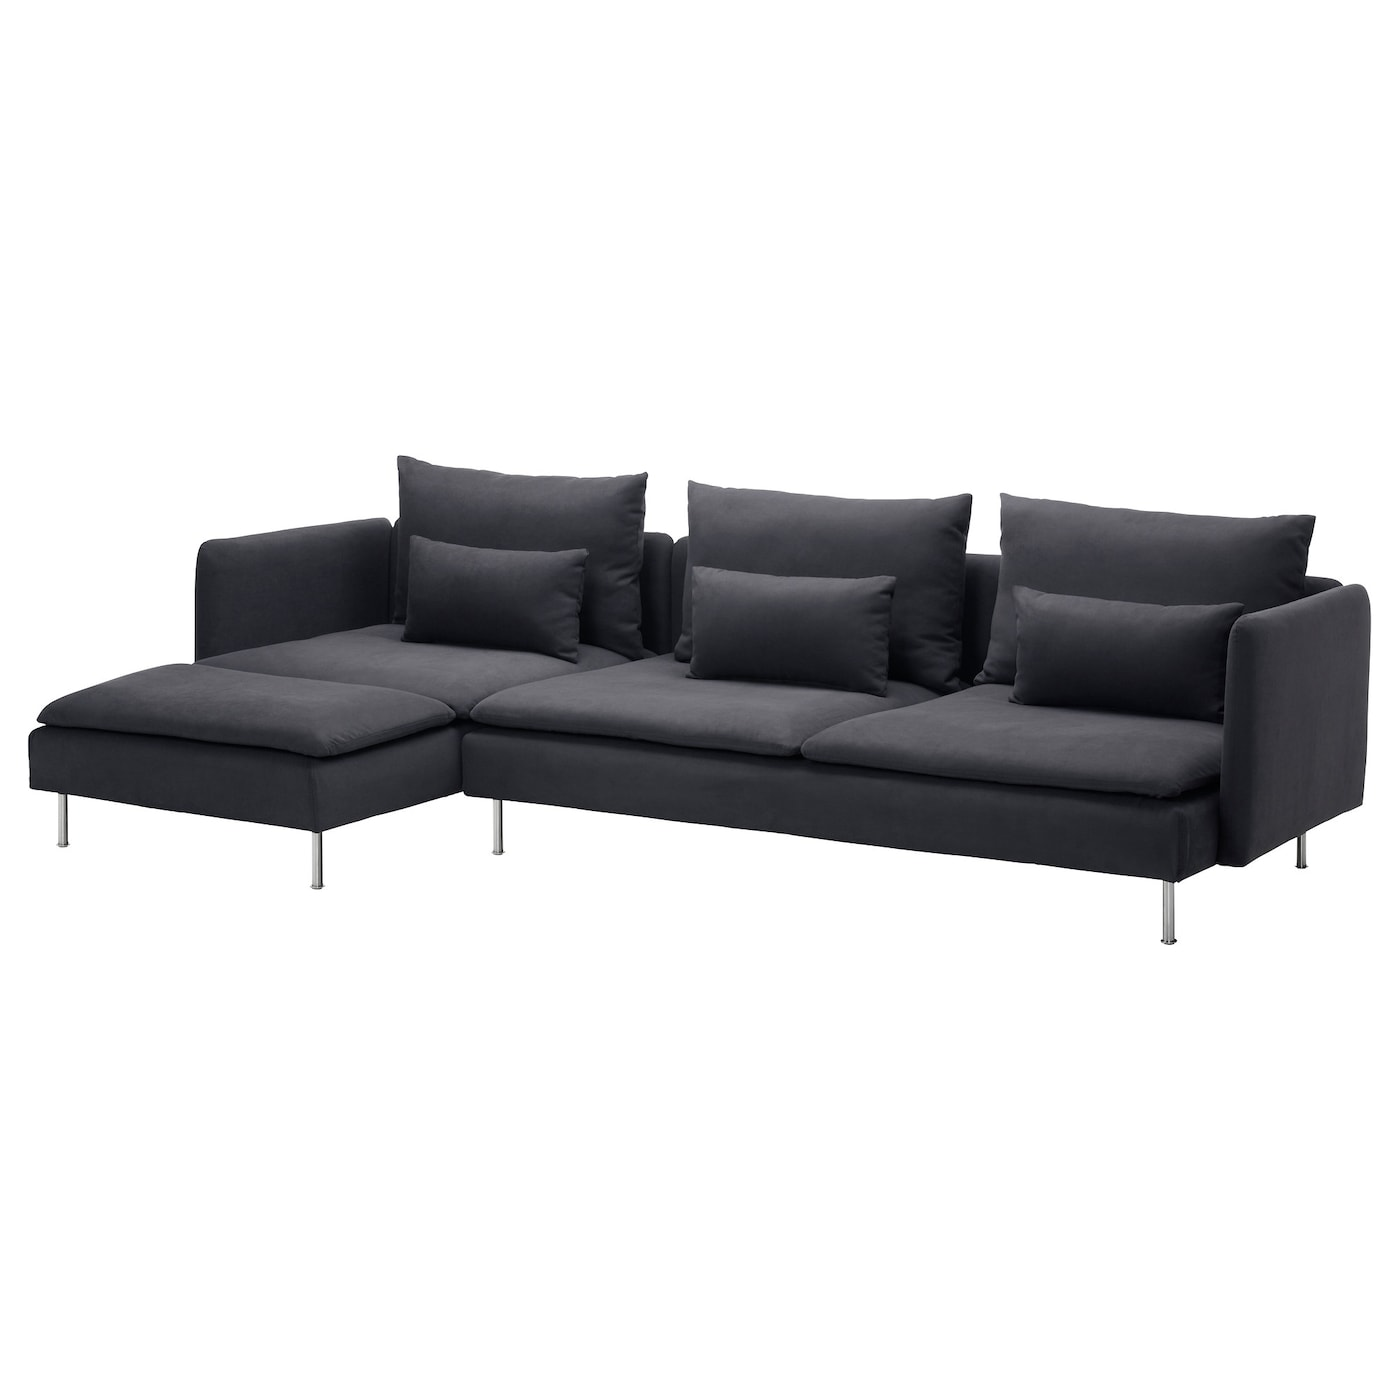 S derhamn 4 seat sofa with chaise longue samsta dark grey for 4 seat sectional sofa chaise